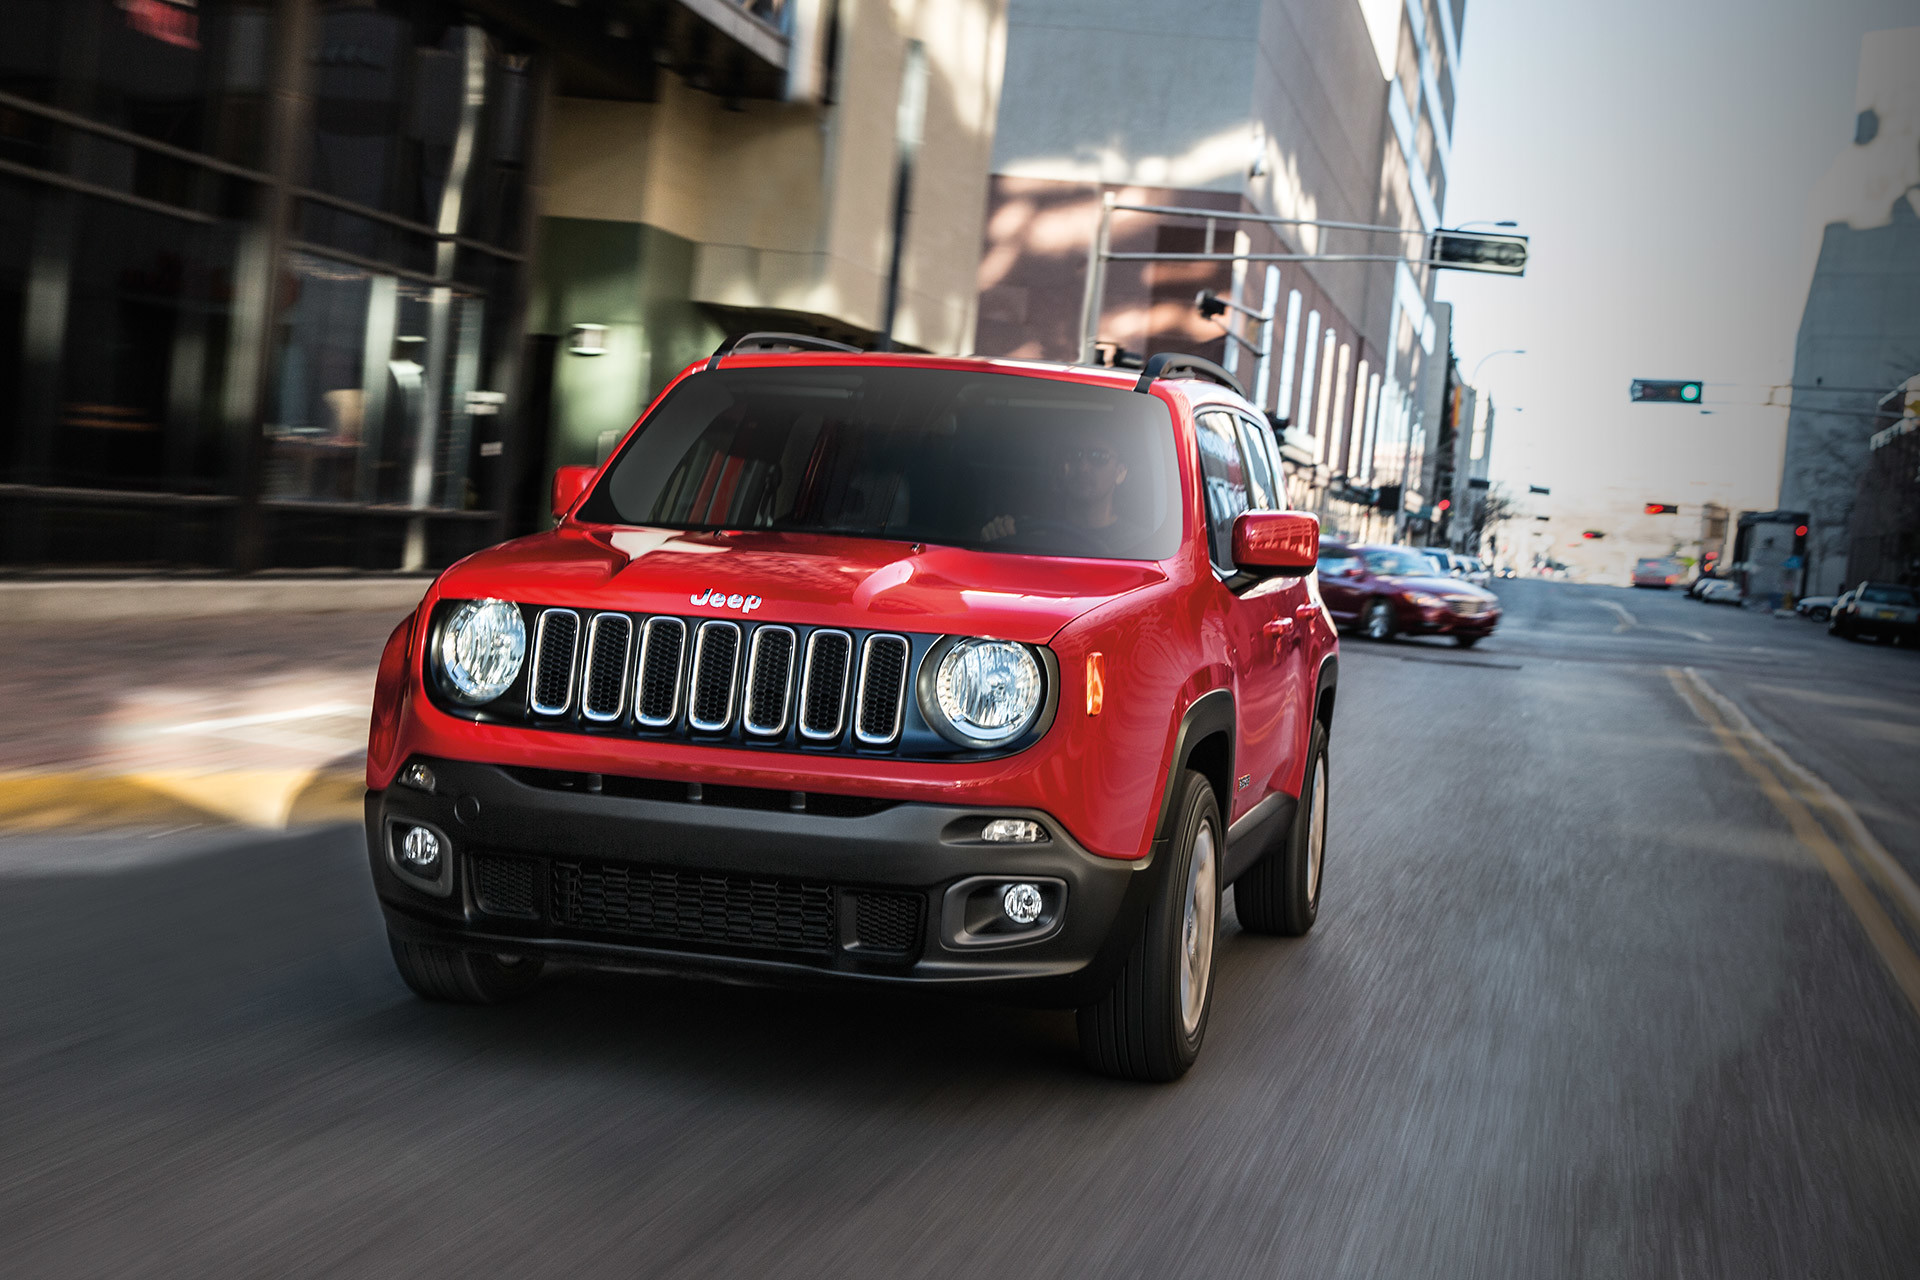 2018 Jeep Renegade small SUV shown in red